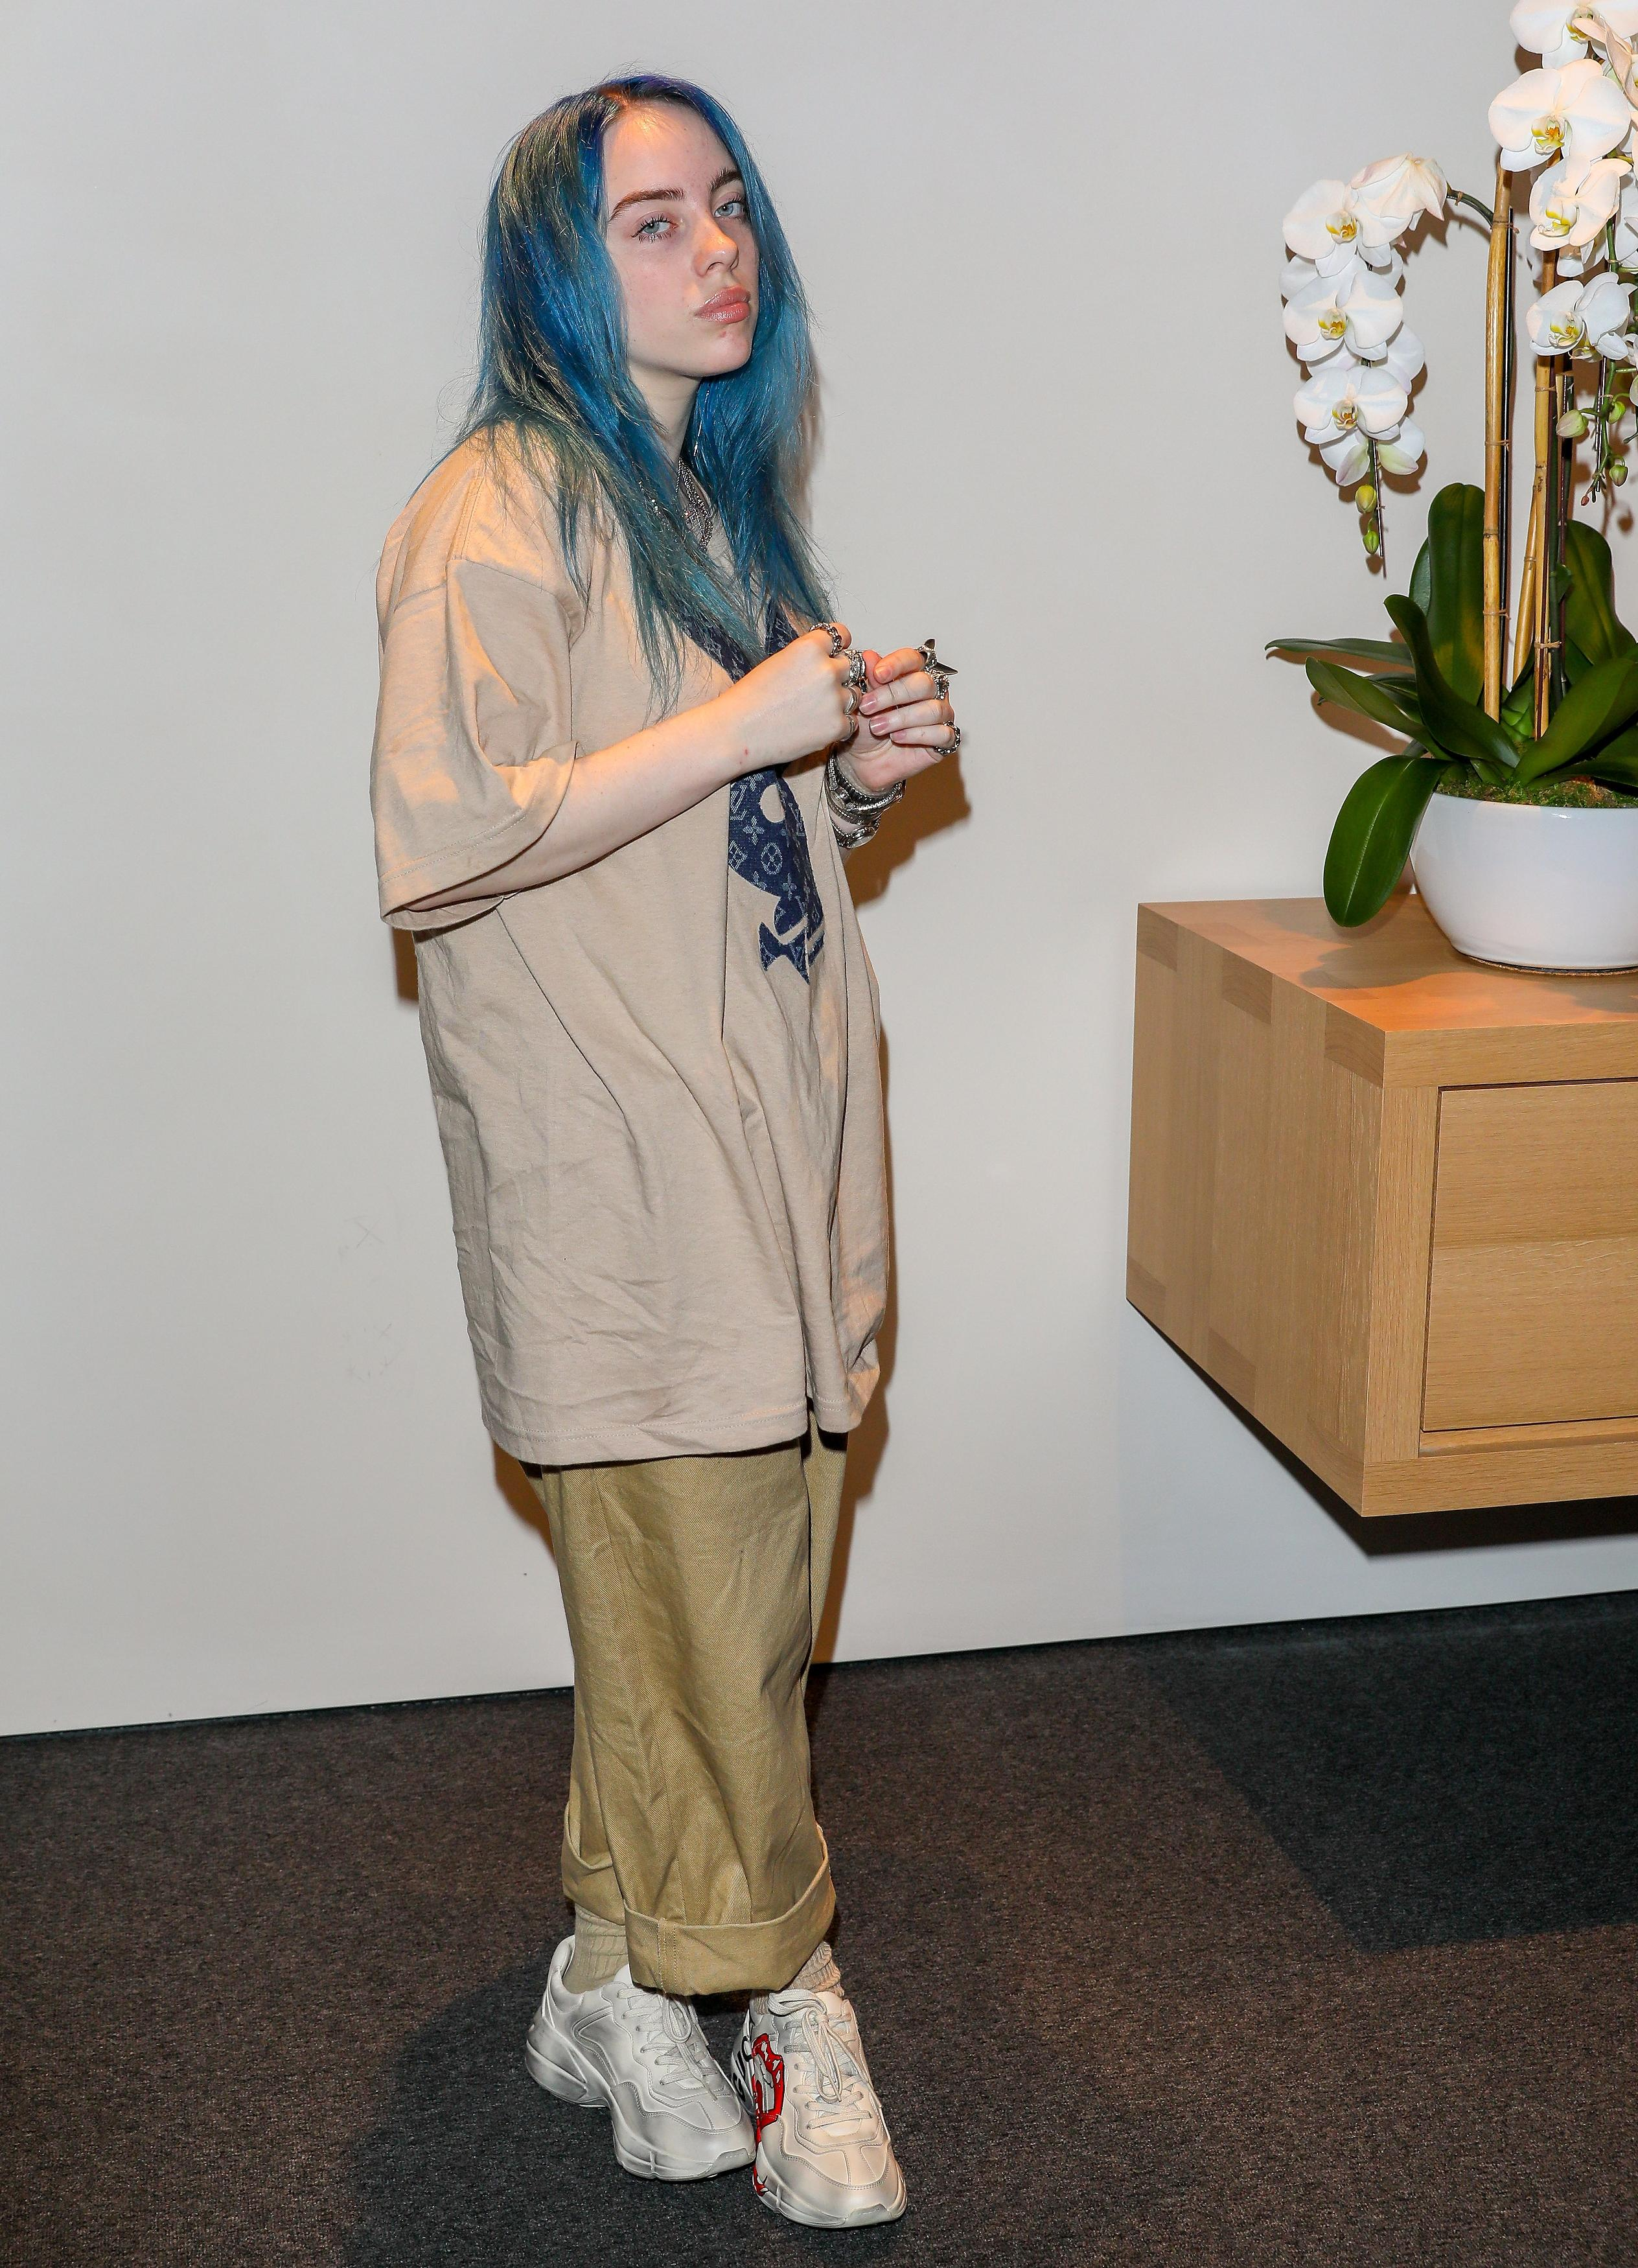 All The Girls Standing In The Line For The Bathroom: 17-year-old Sensation Billie Eilish Smashes Sales